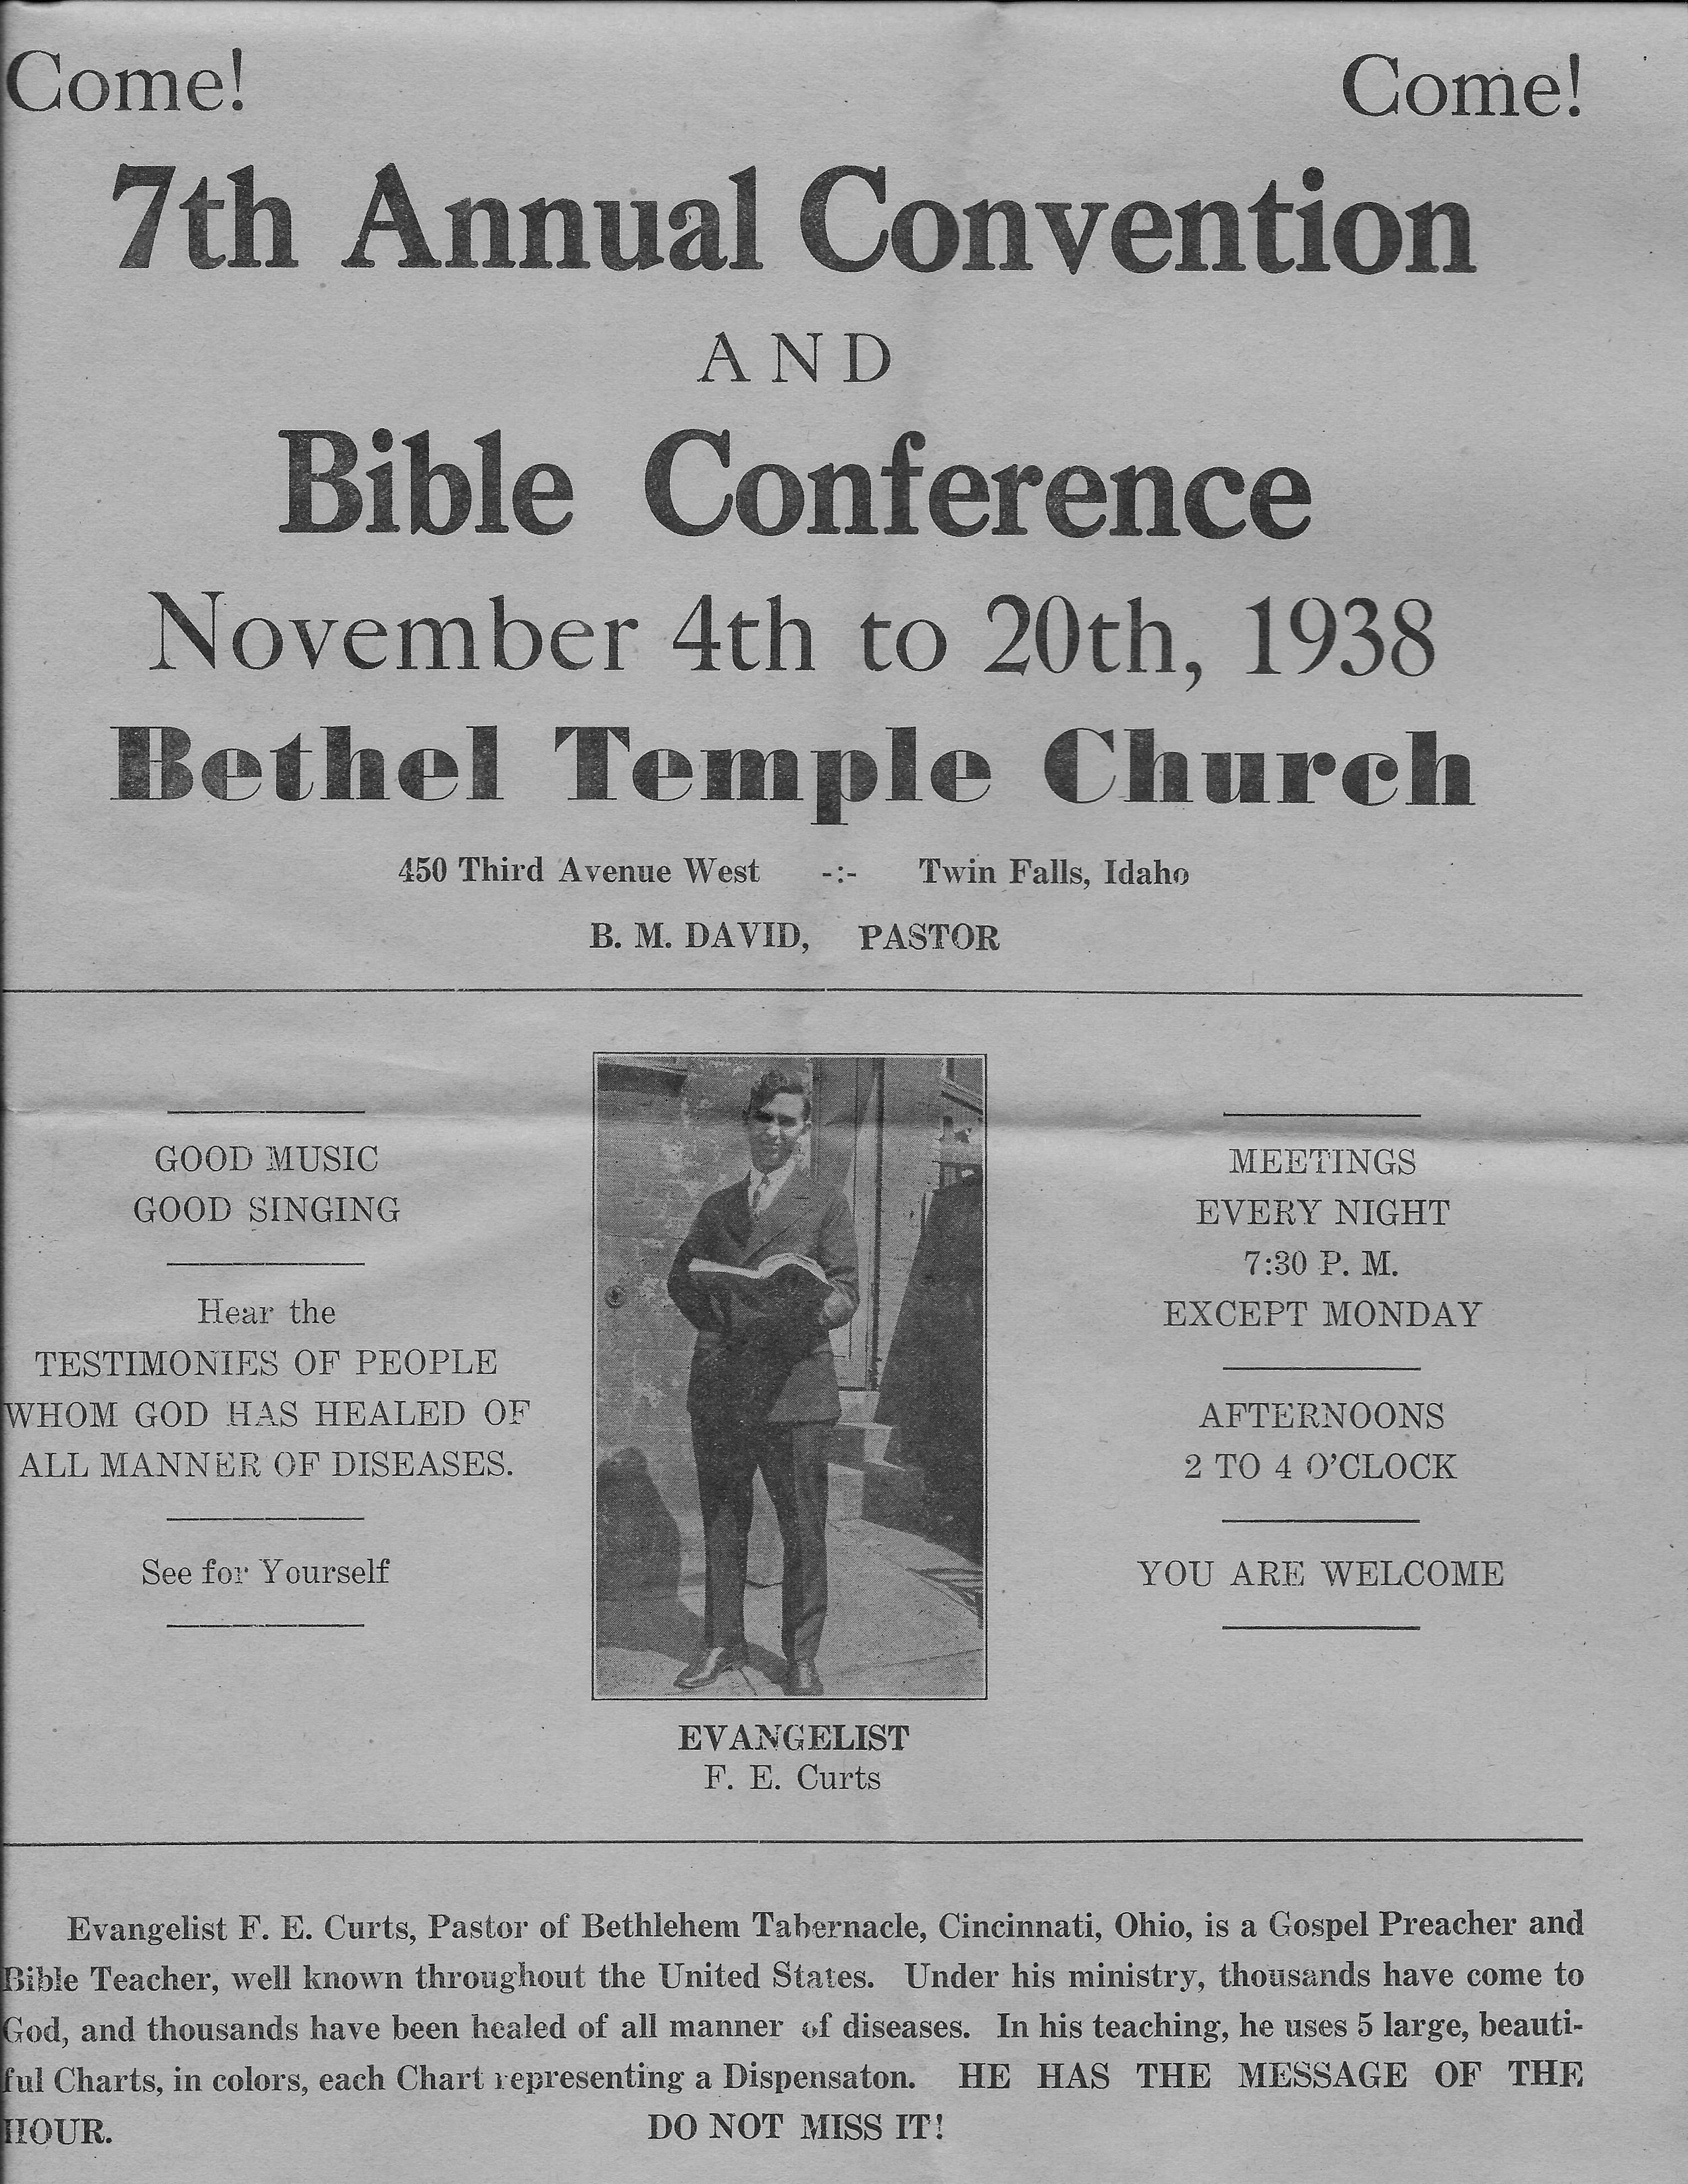 7th Annual Convention and Bible Conference 1938